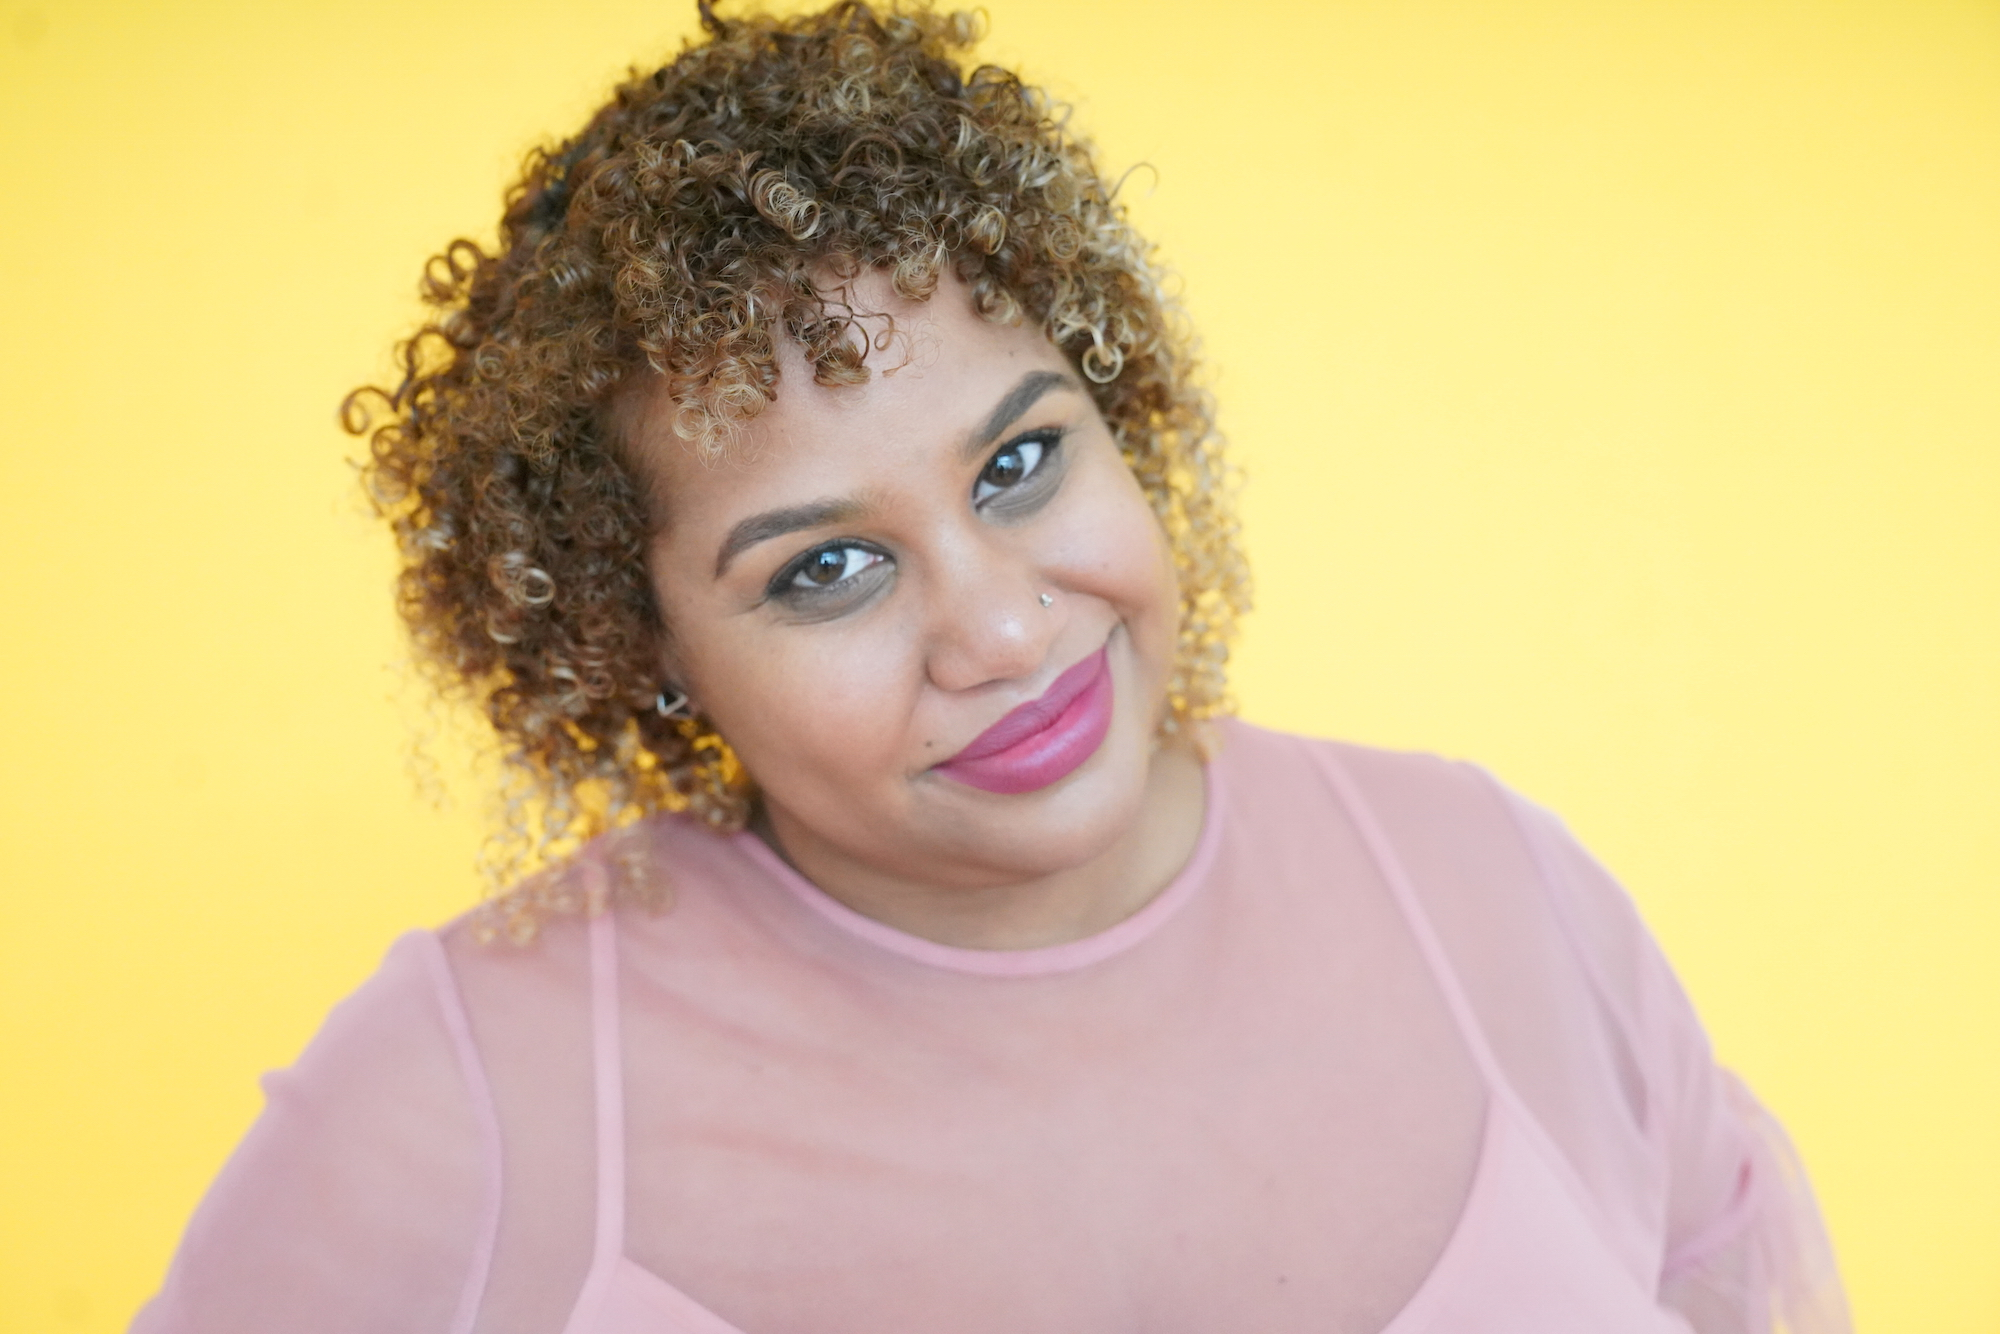 BUSHWICK DAILY - Local Afro-Latinx Comedian Creates Diverse Spaces in Comedy